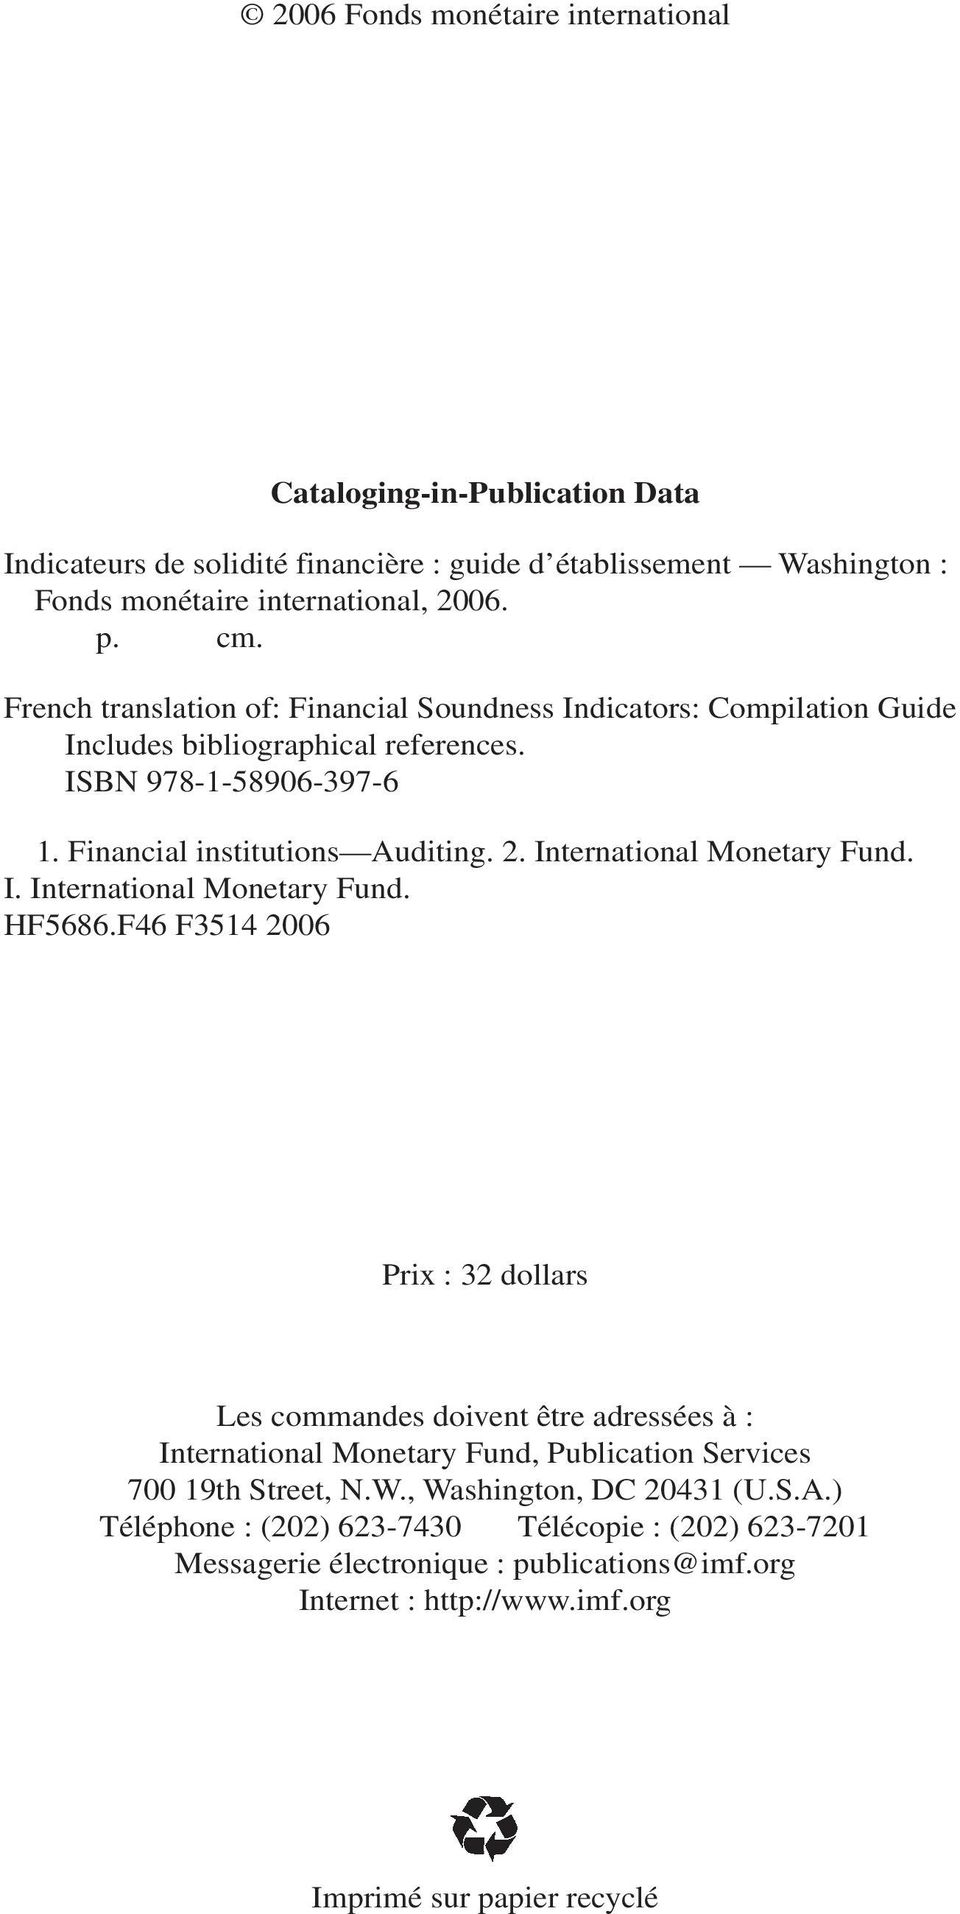 International Monetary Fund. I. International Monetary Fund. HF5686.